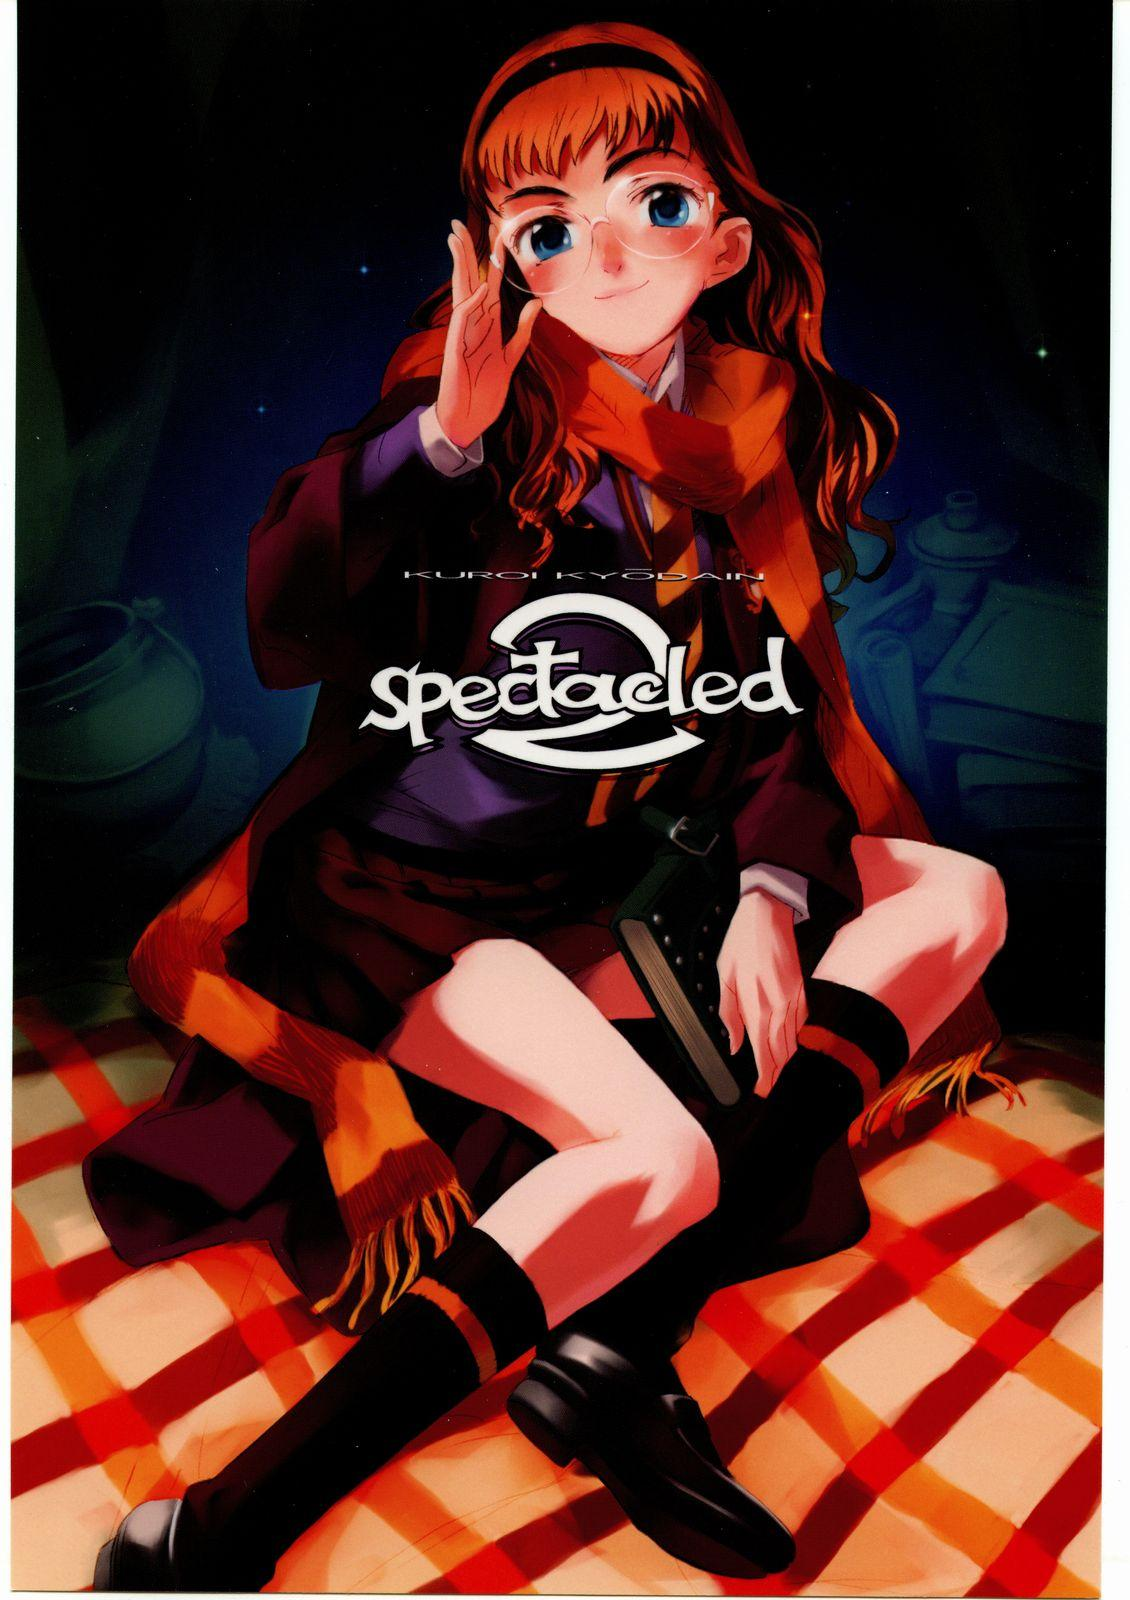 spectacled 2 0